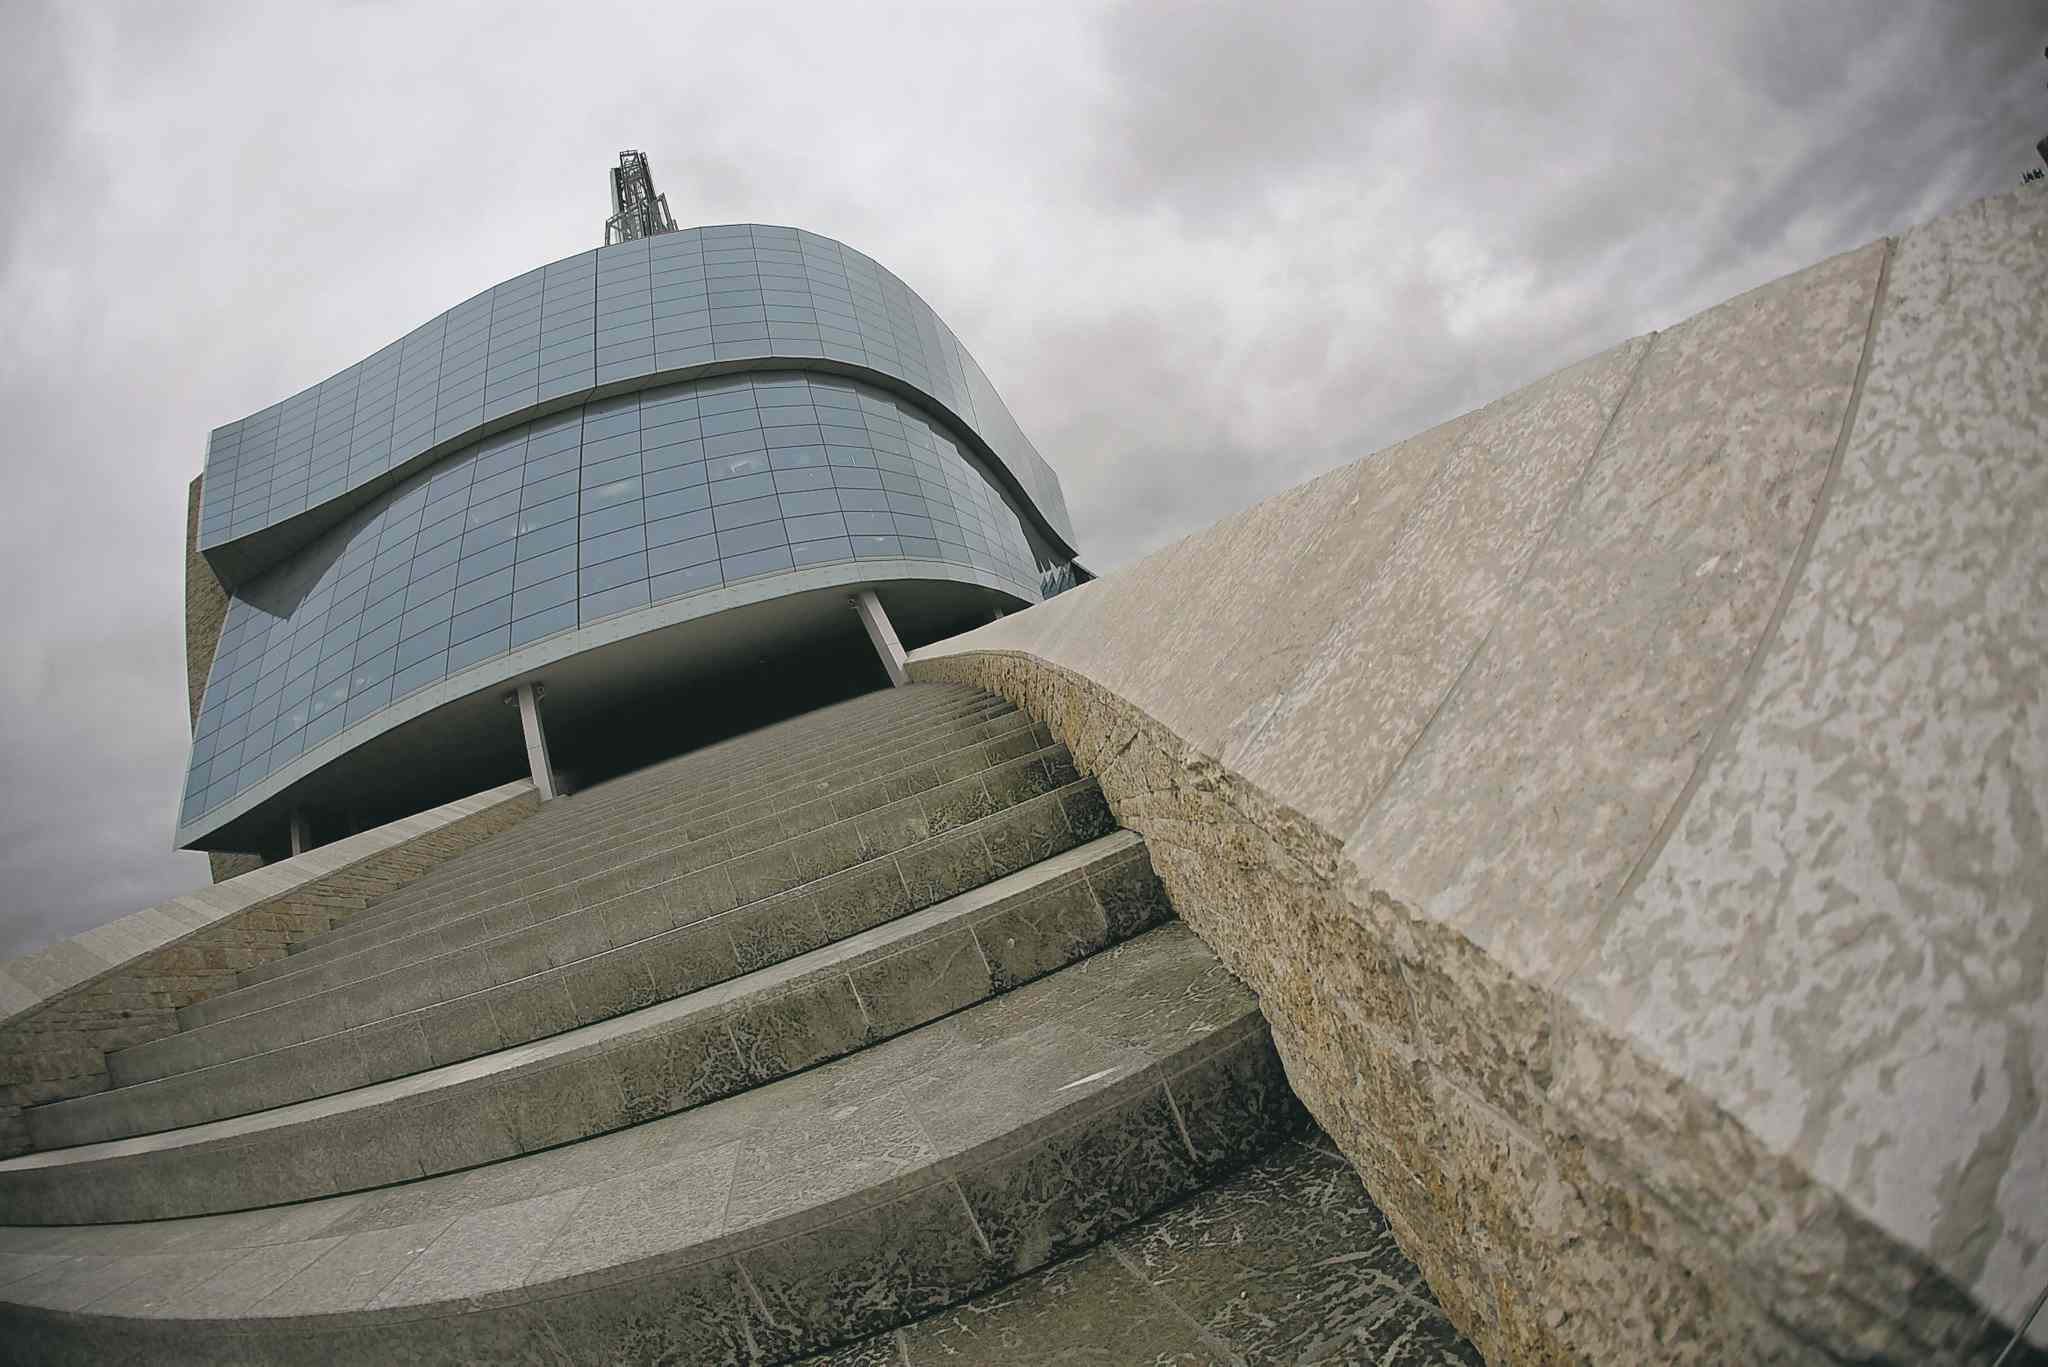 John Woods / Winnipeg Free PressOn Saturday, four of the 11 galleries in the Canadian Museum for Human Rights will be open to the 9,000 people who got tickets to preview tours.